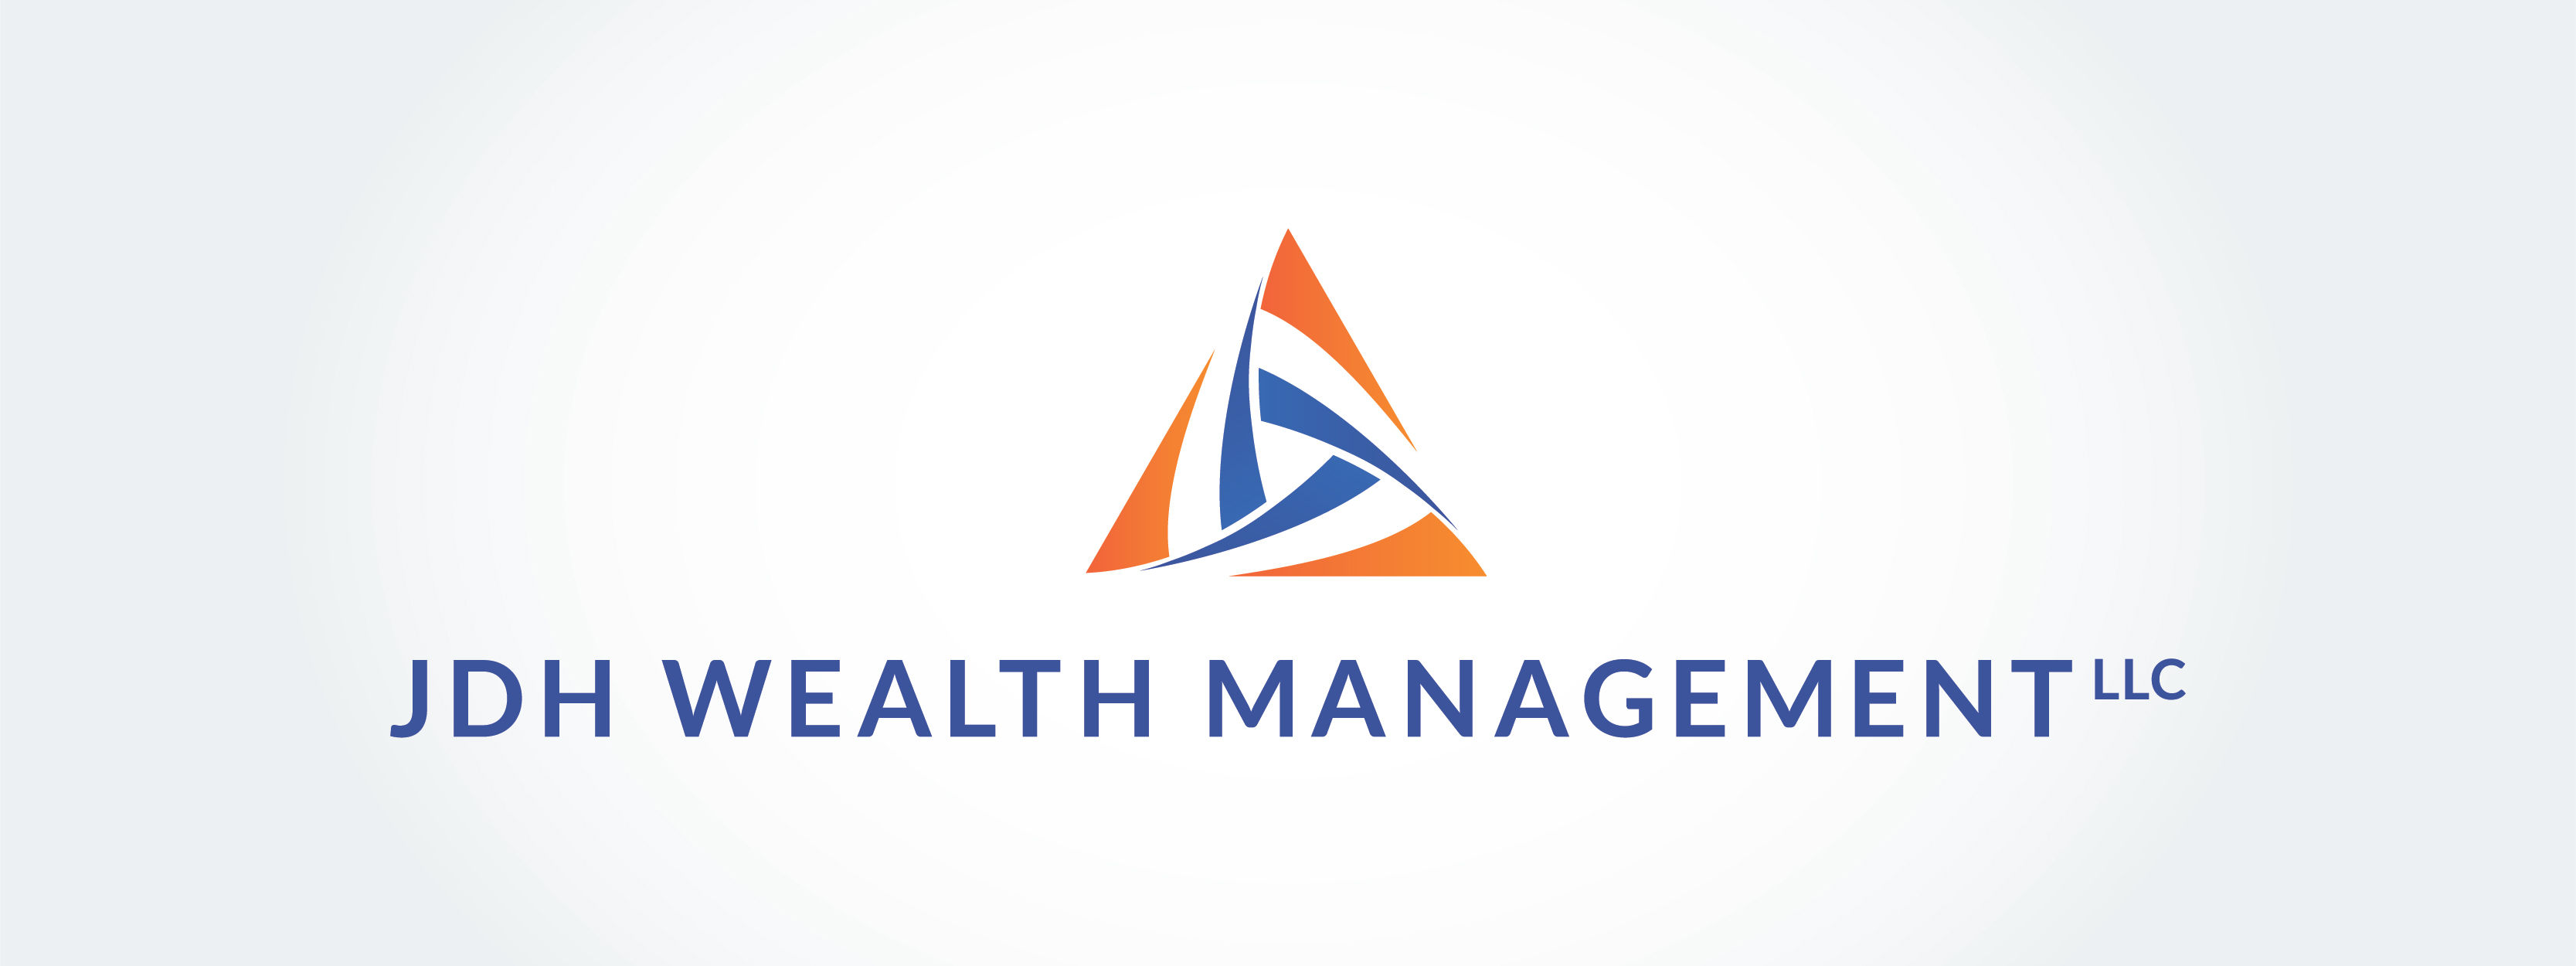 JDH Wealth Management logo Featured Image